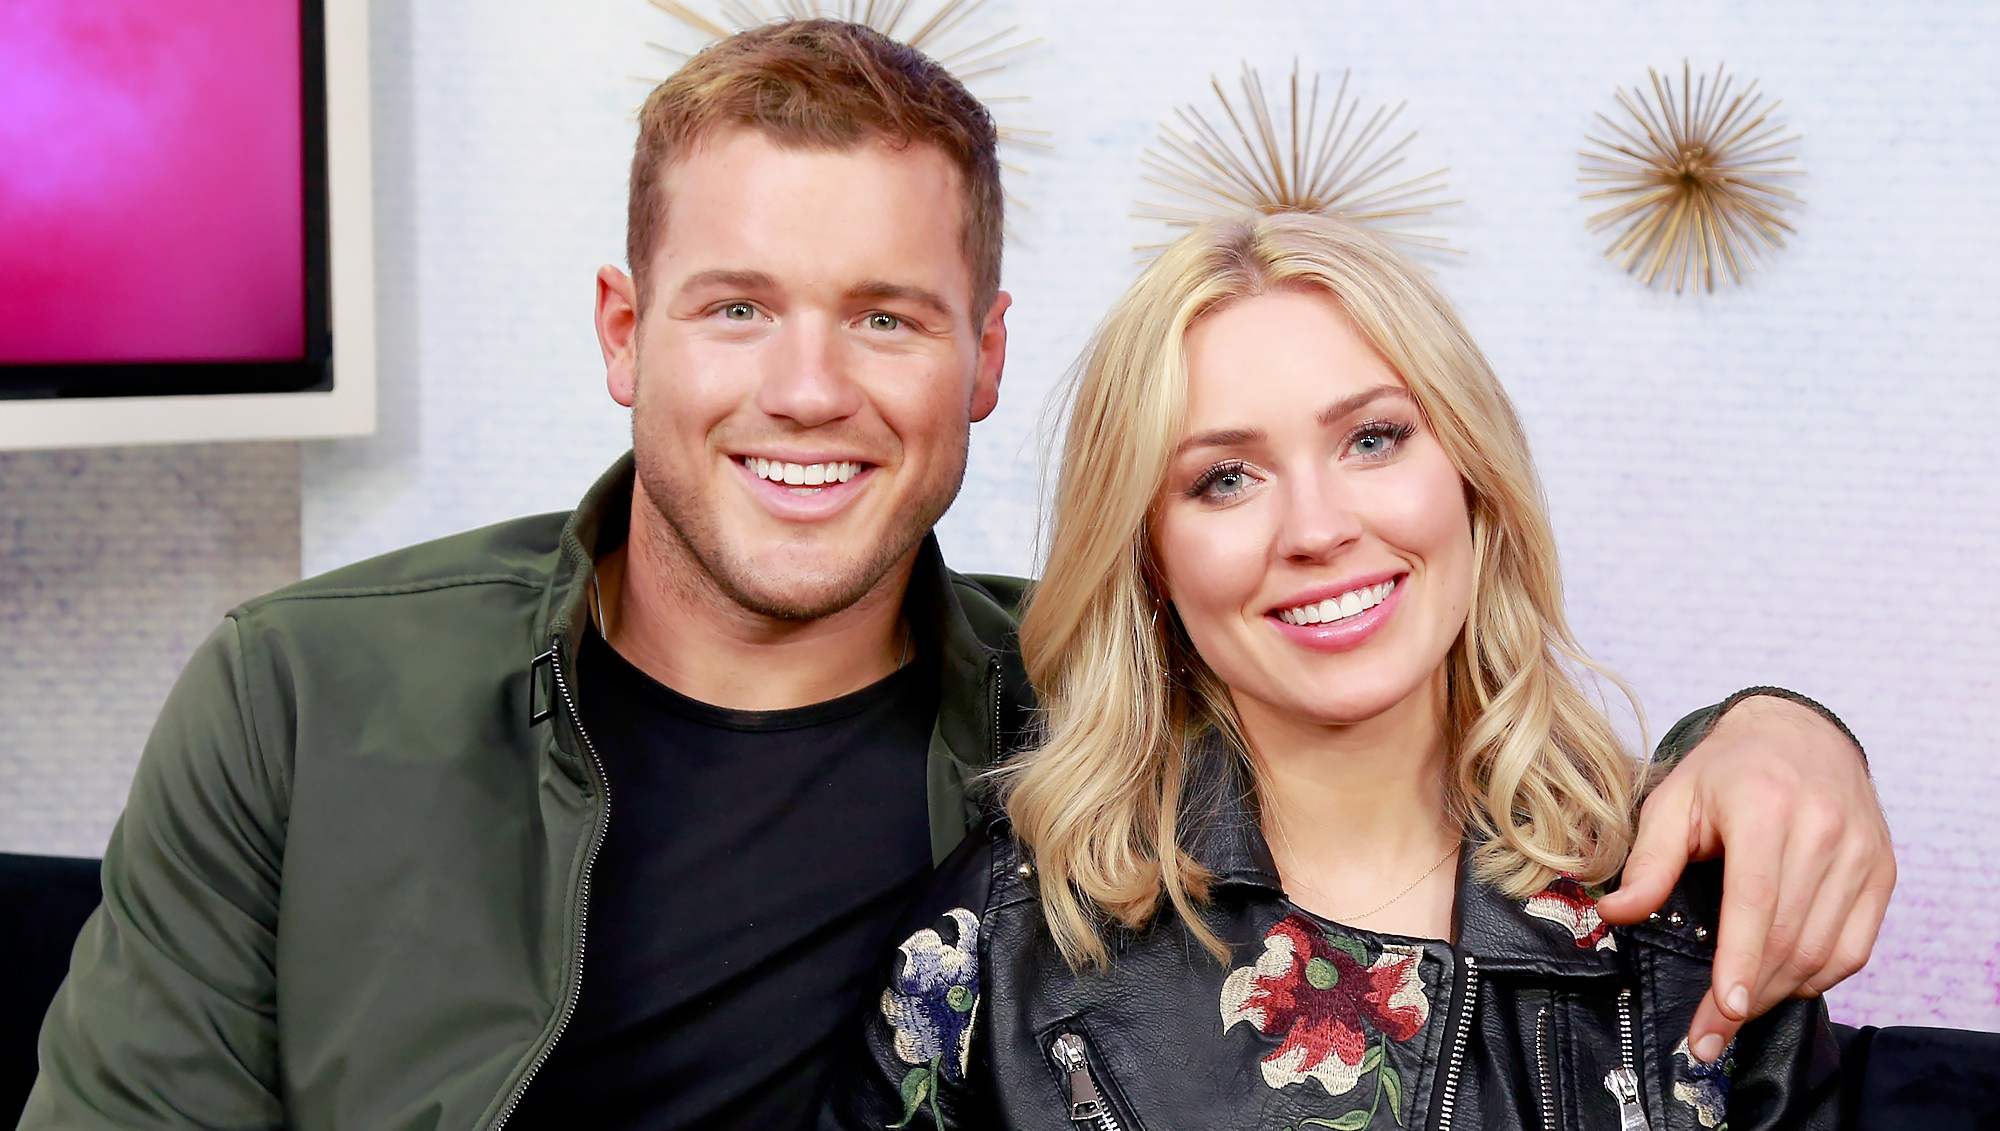 Colton-Underwood-and-Cassie-Randolph-engagement